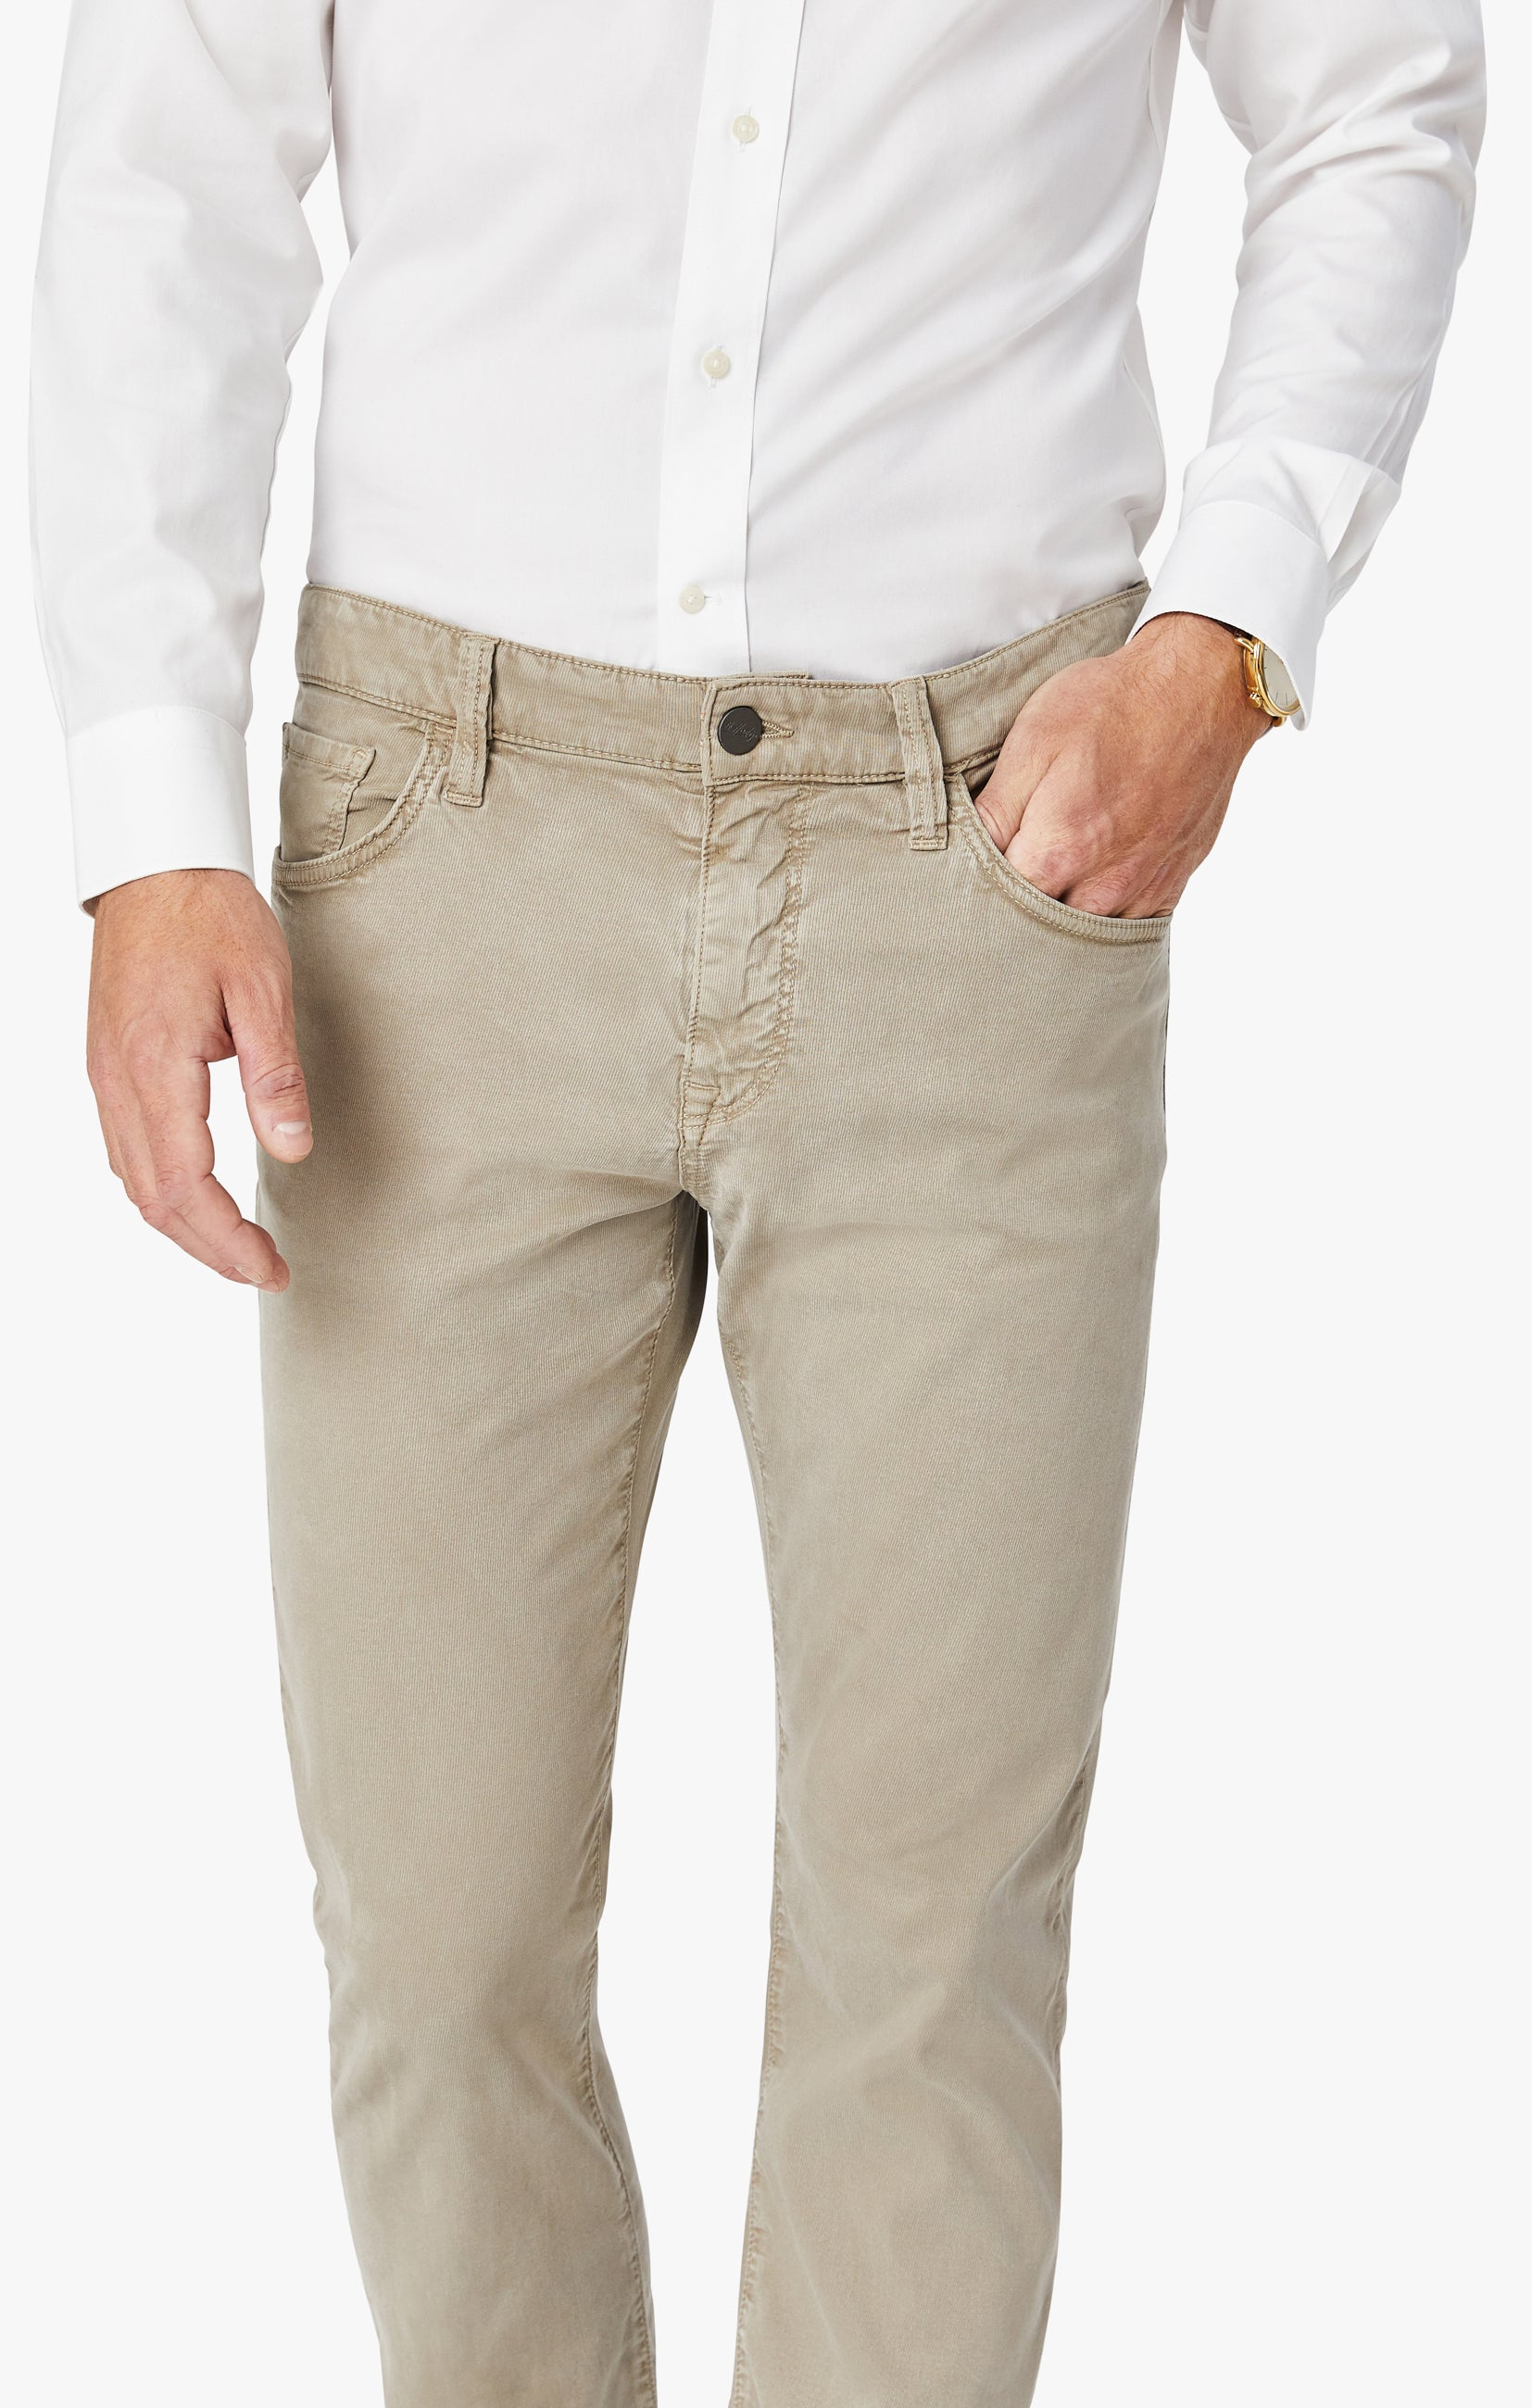 Courage Straight Leg Pants In Mushroom Soft Touch Image 8